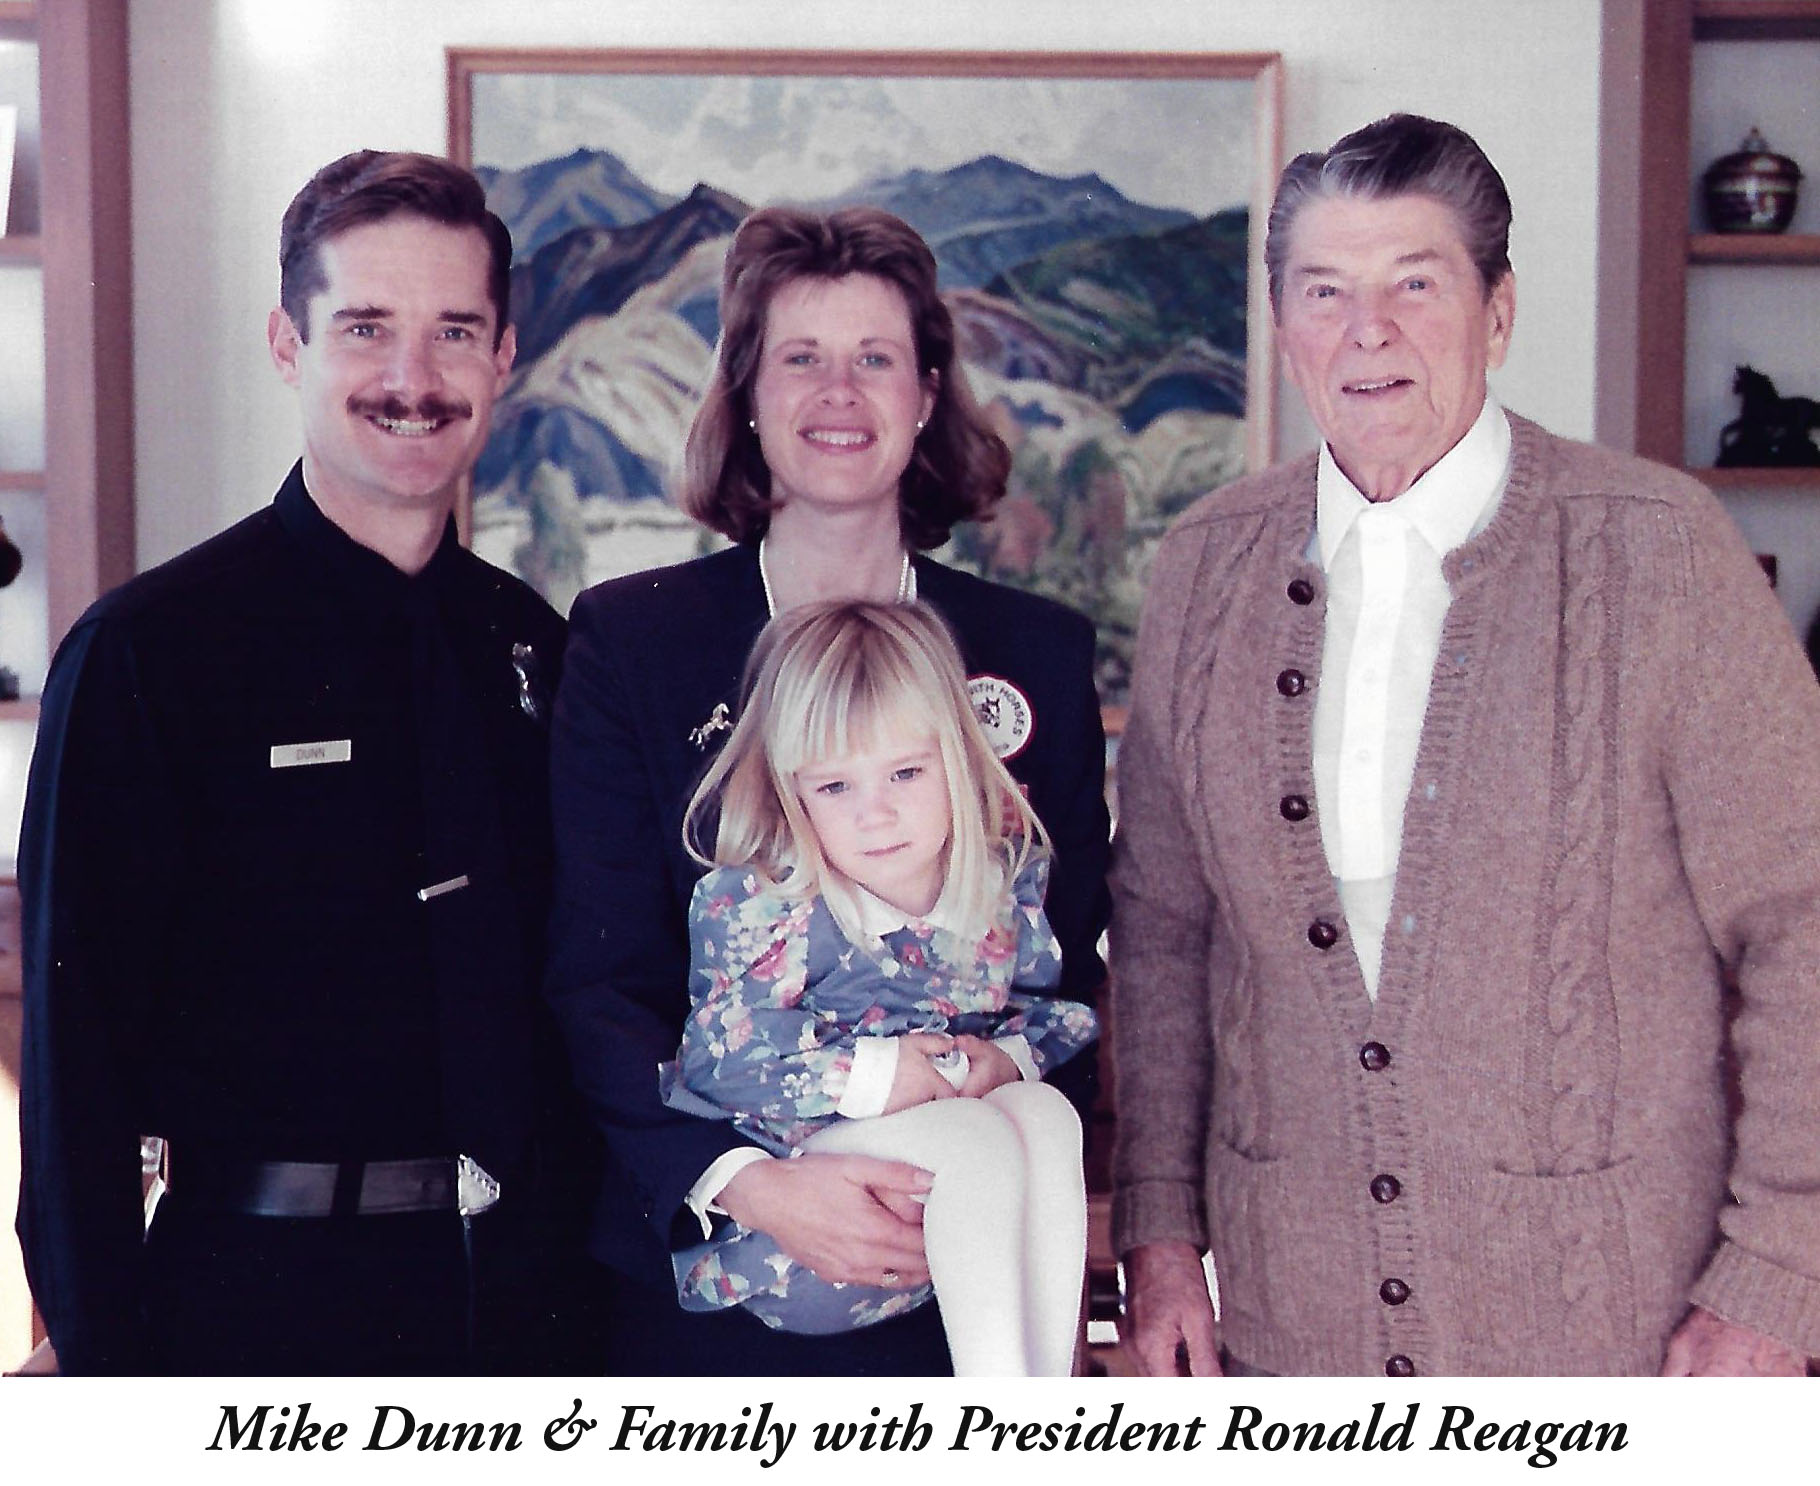 Mike Dunn & Family with Ronald Reagan